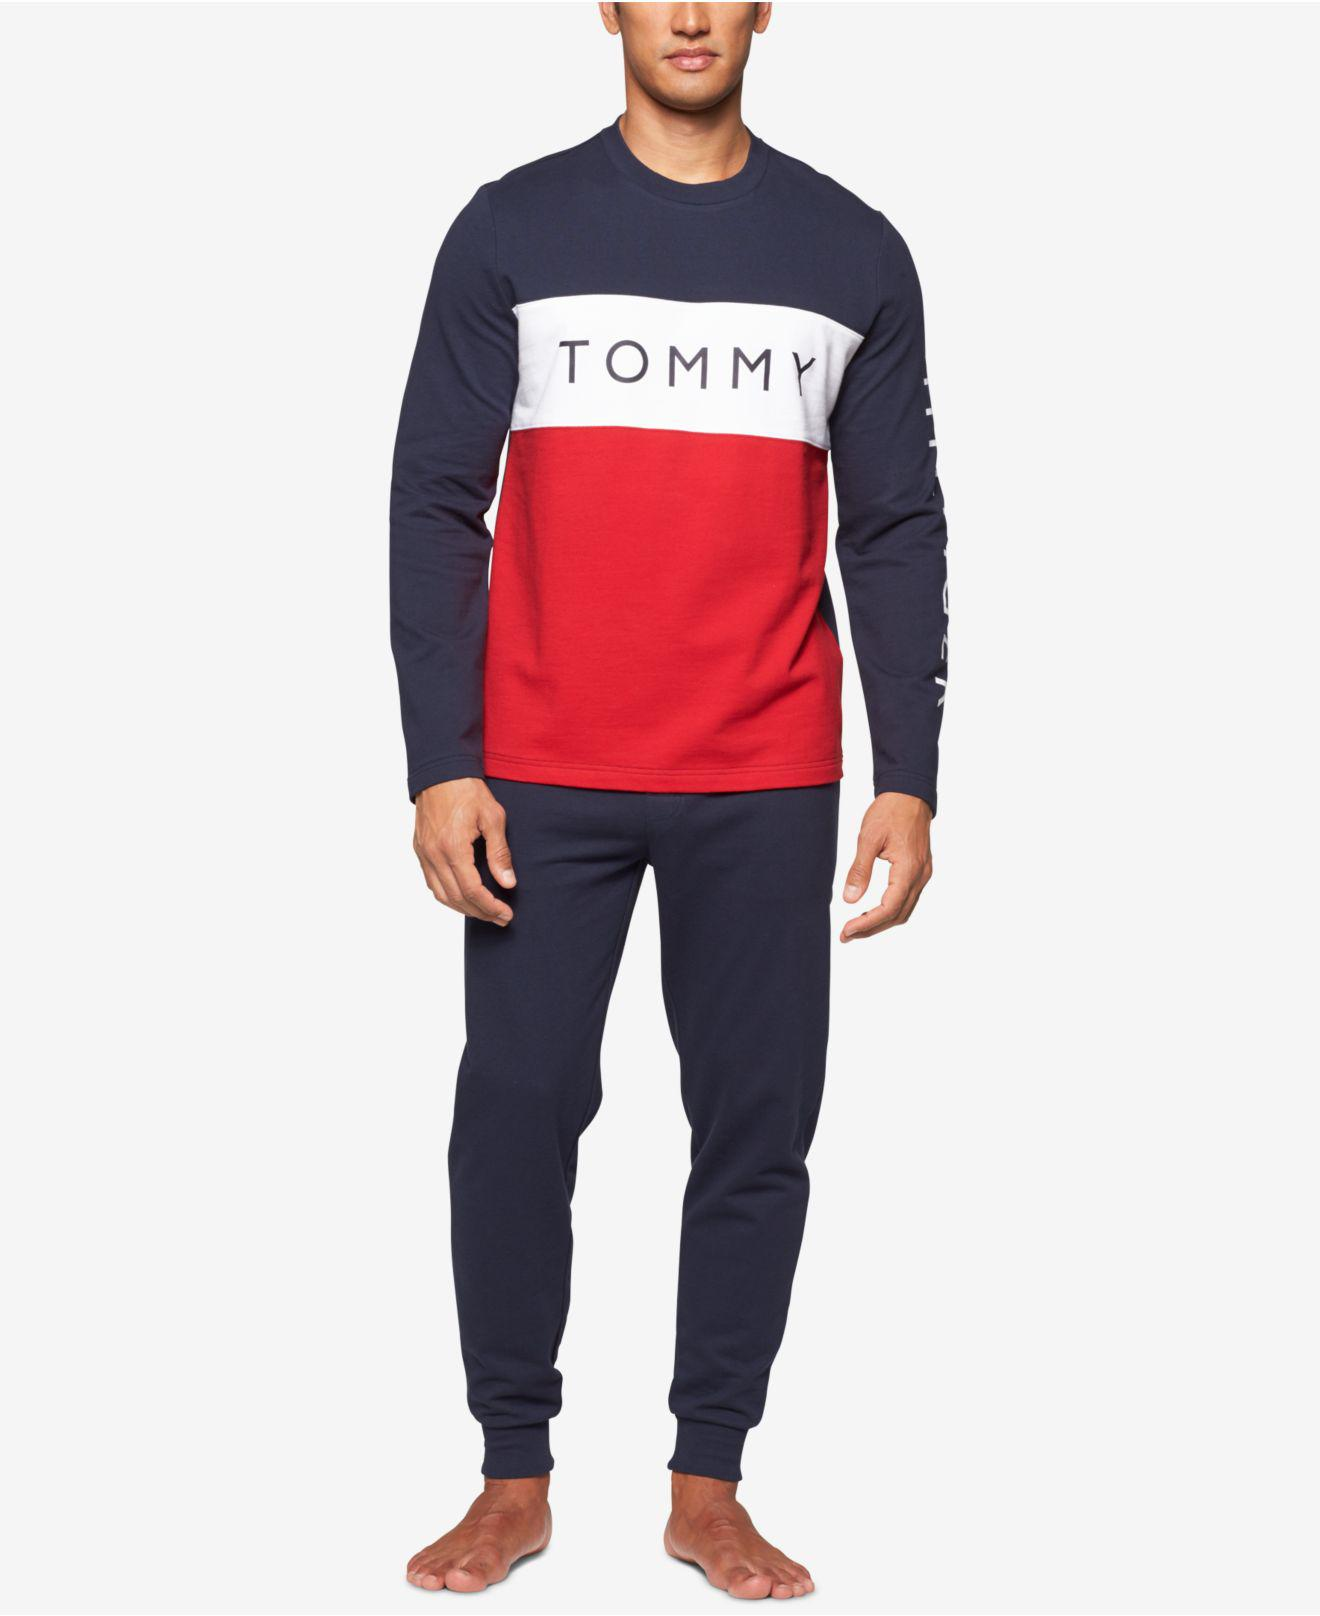 ef056fd34378 Tommy Hilfiger Men's Modern Essentials Cotton French Terry Logo Top ...